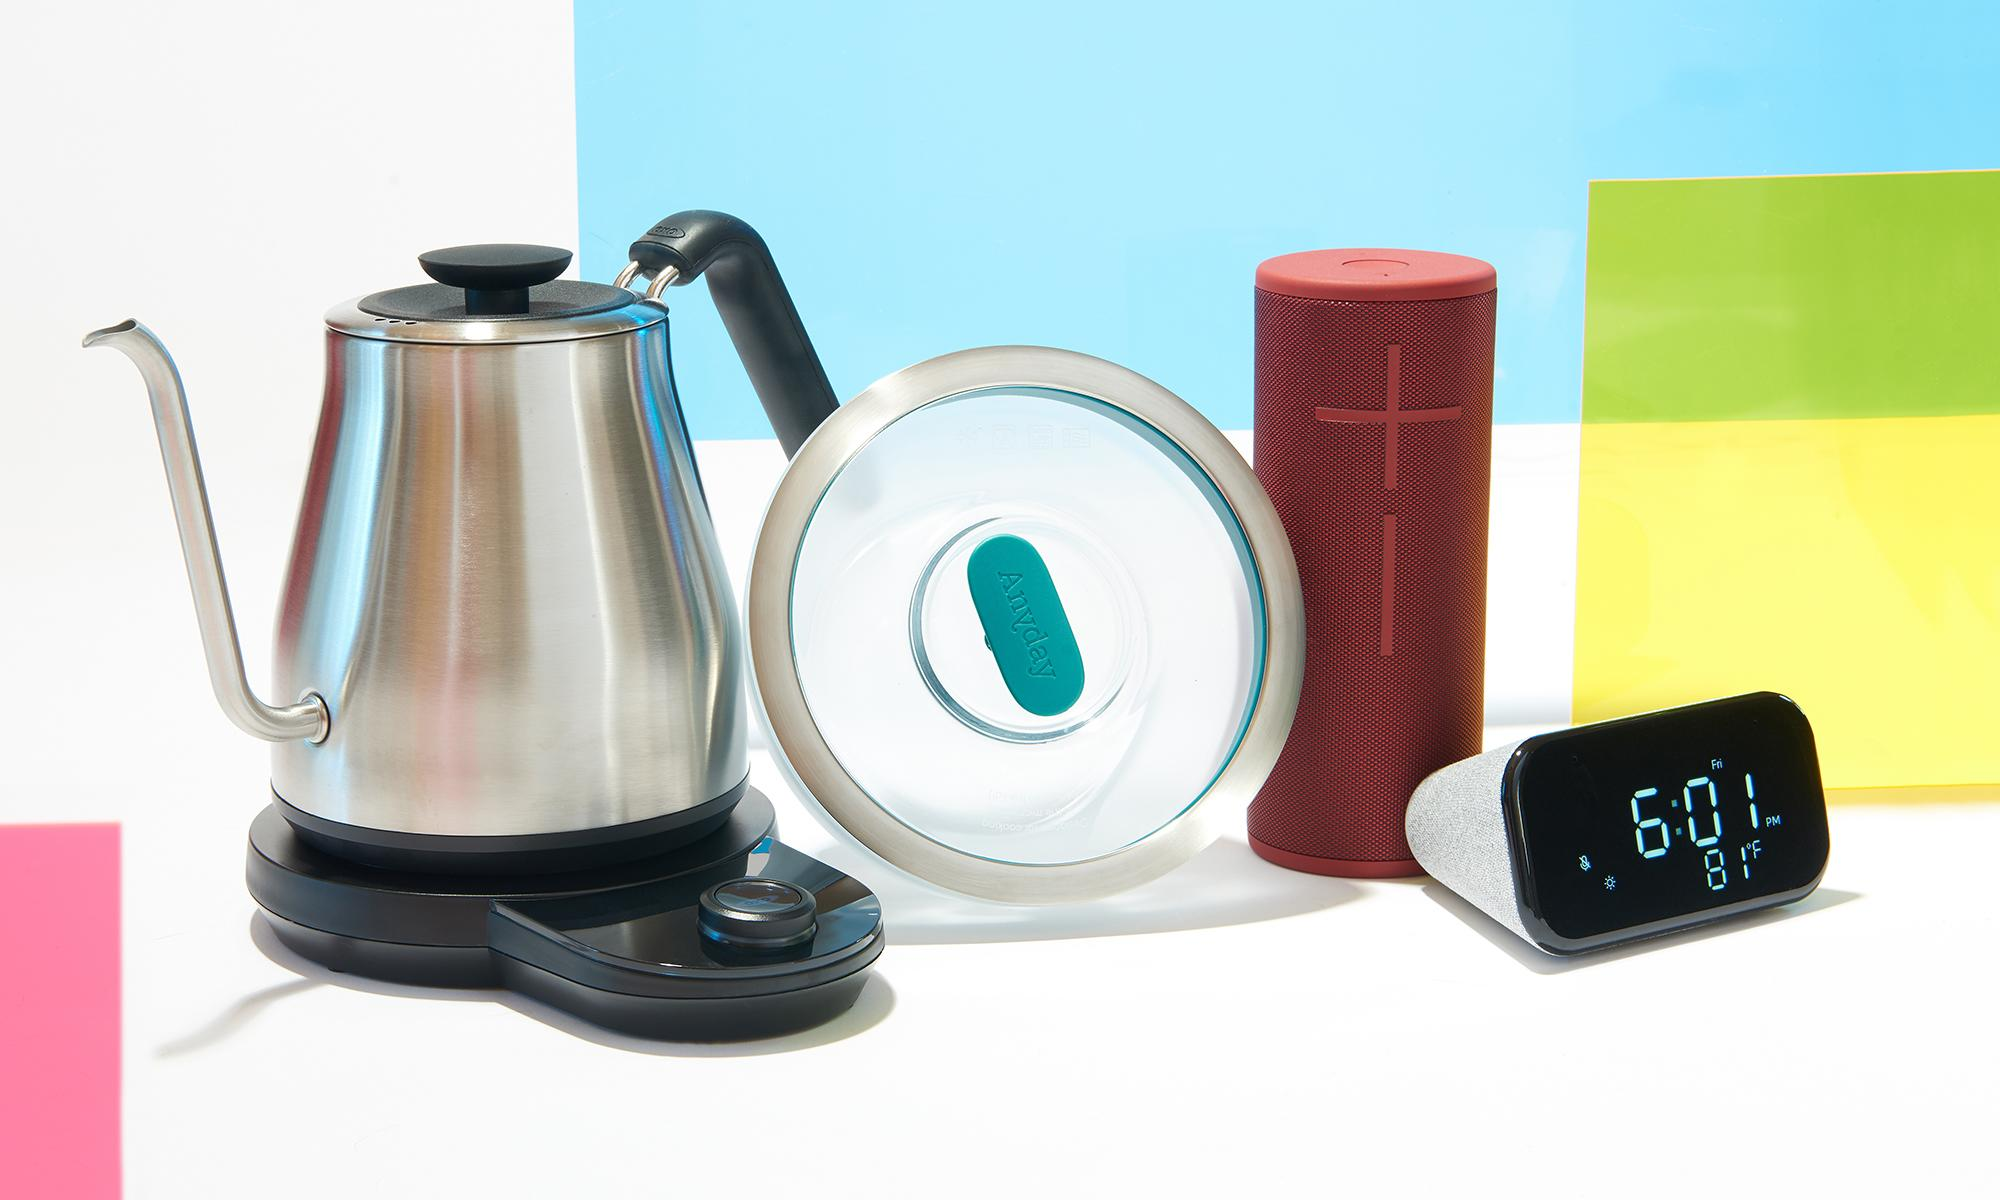 A collection of Dorm Essentials for Engadget's 2021 Back to School guide.